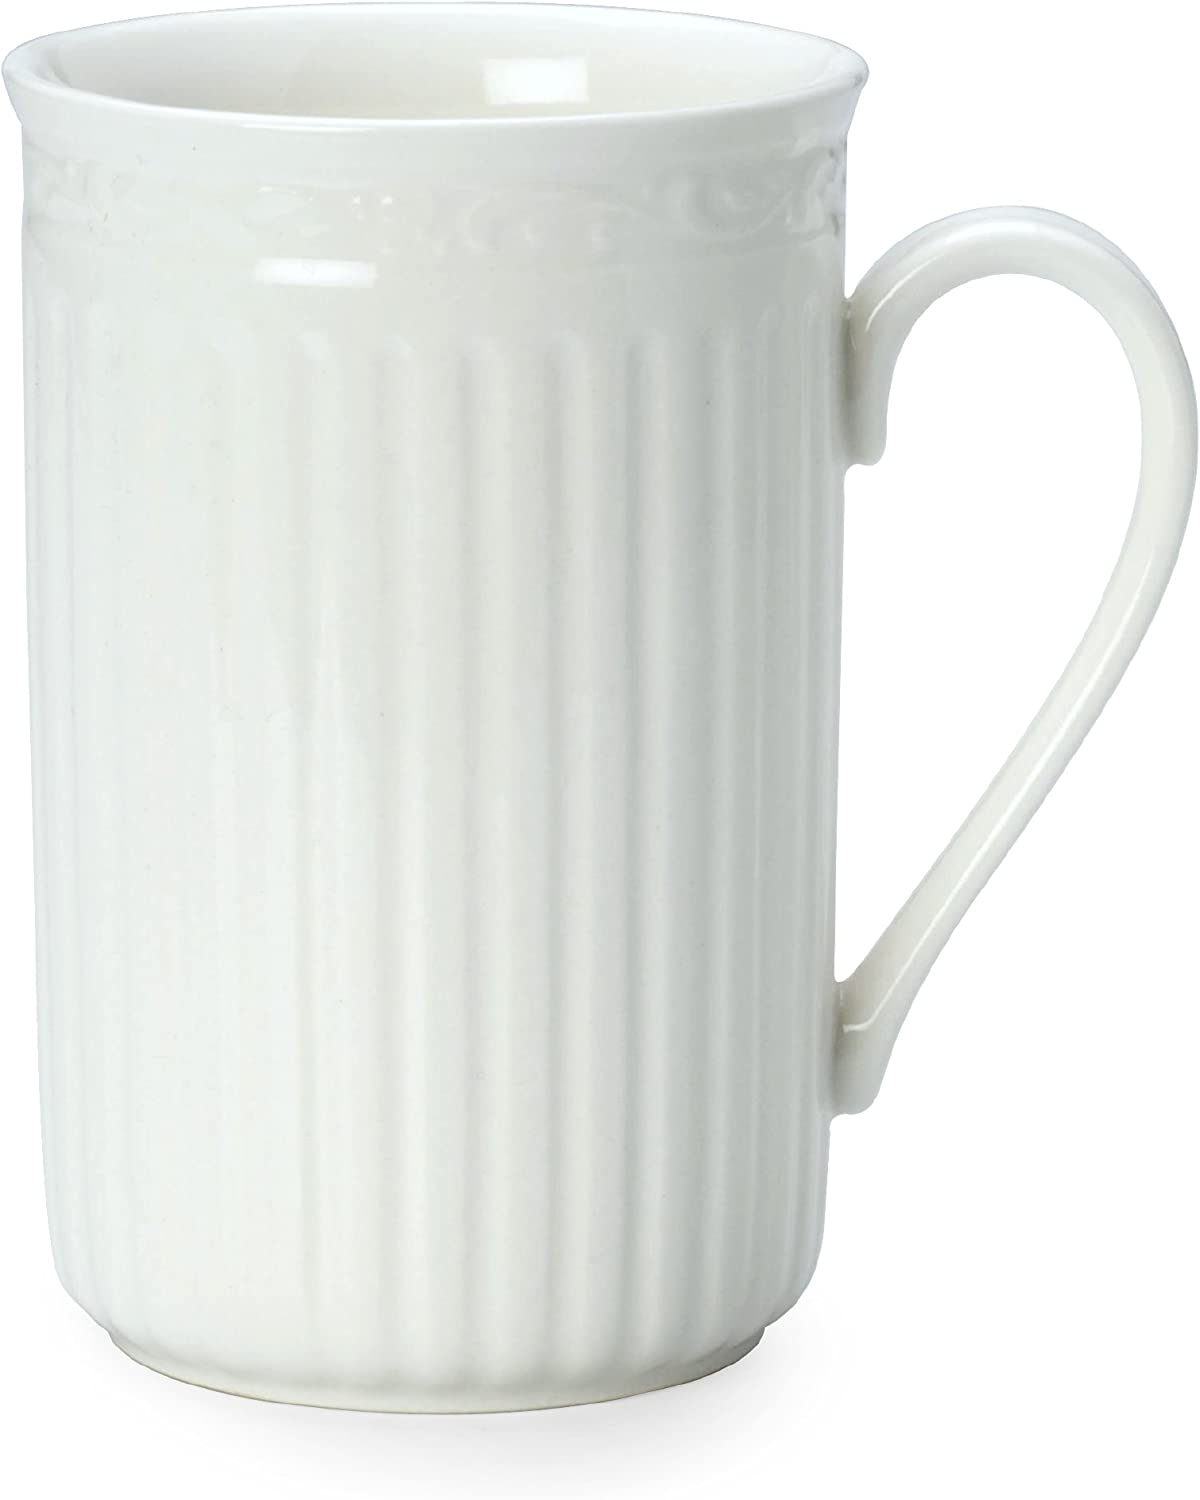 Mikasa Italian Countryside Cappuccino Mug, 13.5-Ounce, Single, White - DD900-816